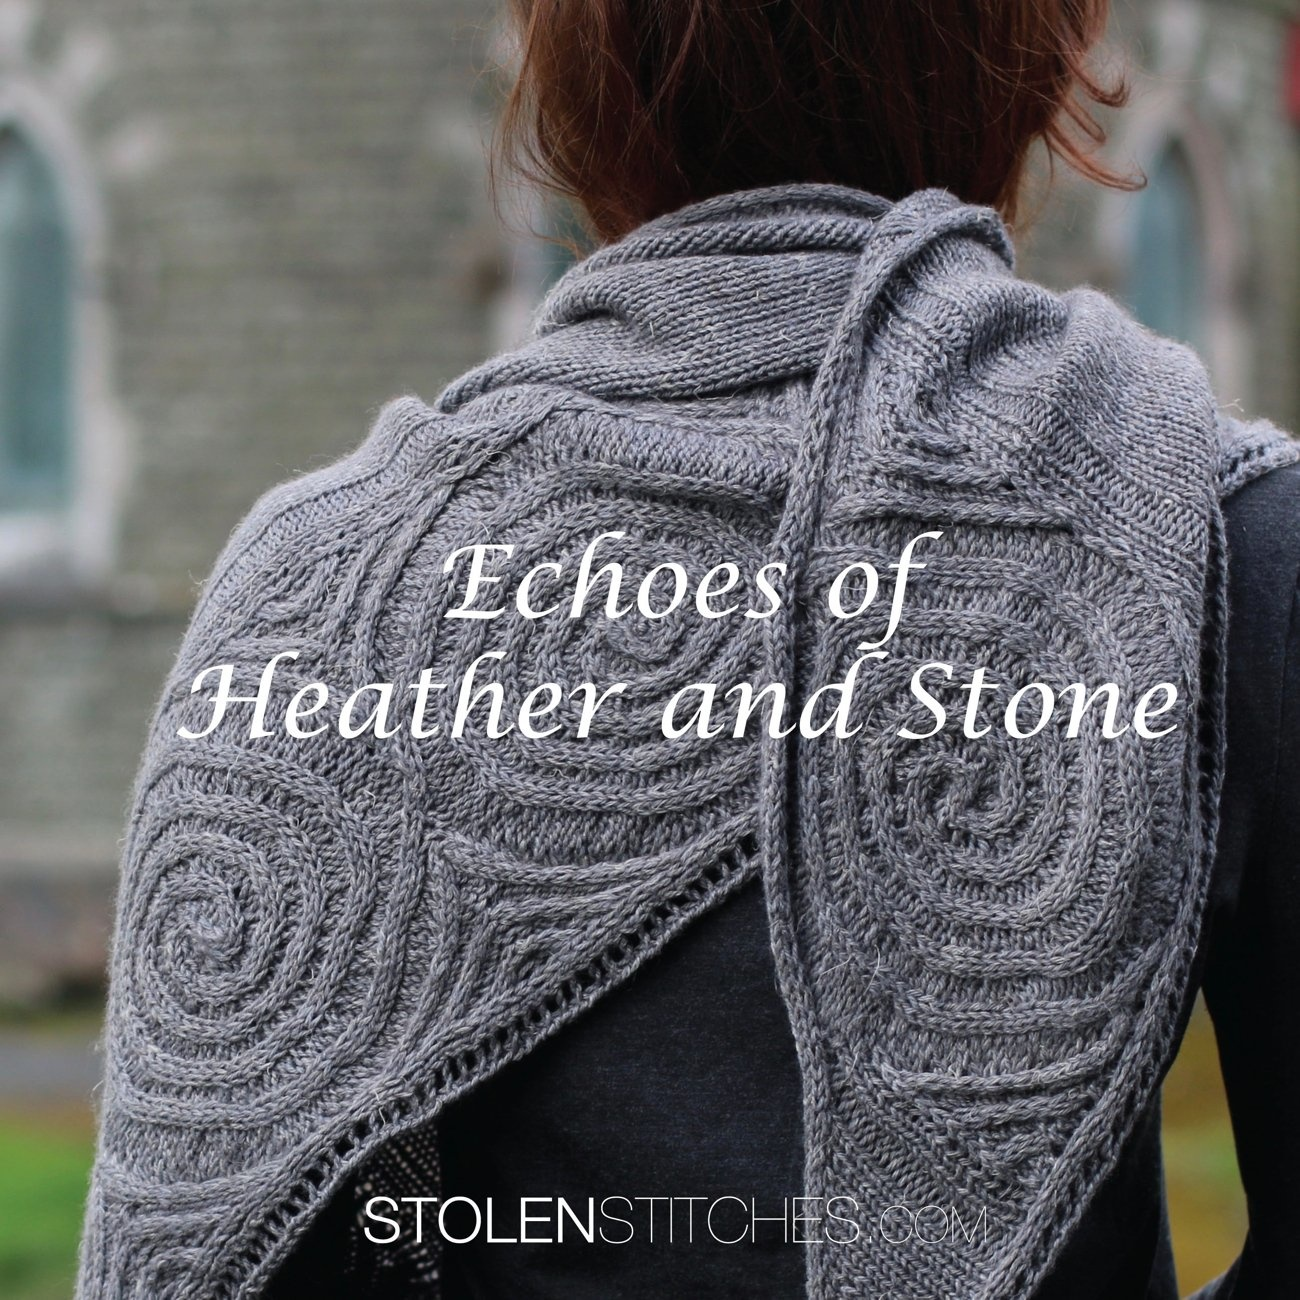 Stolen Stitches Echoes of Heather and Stone